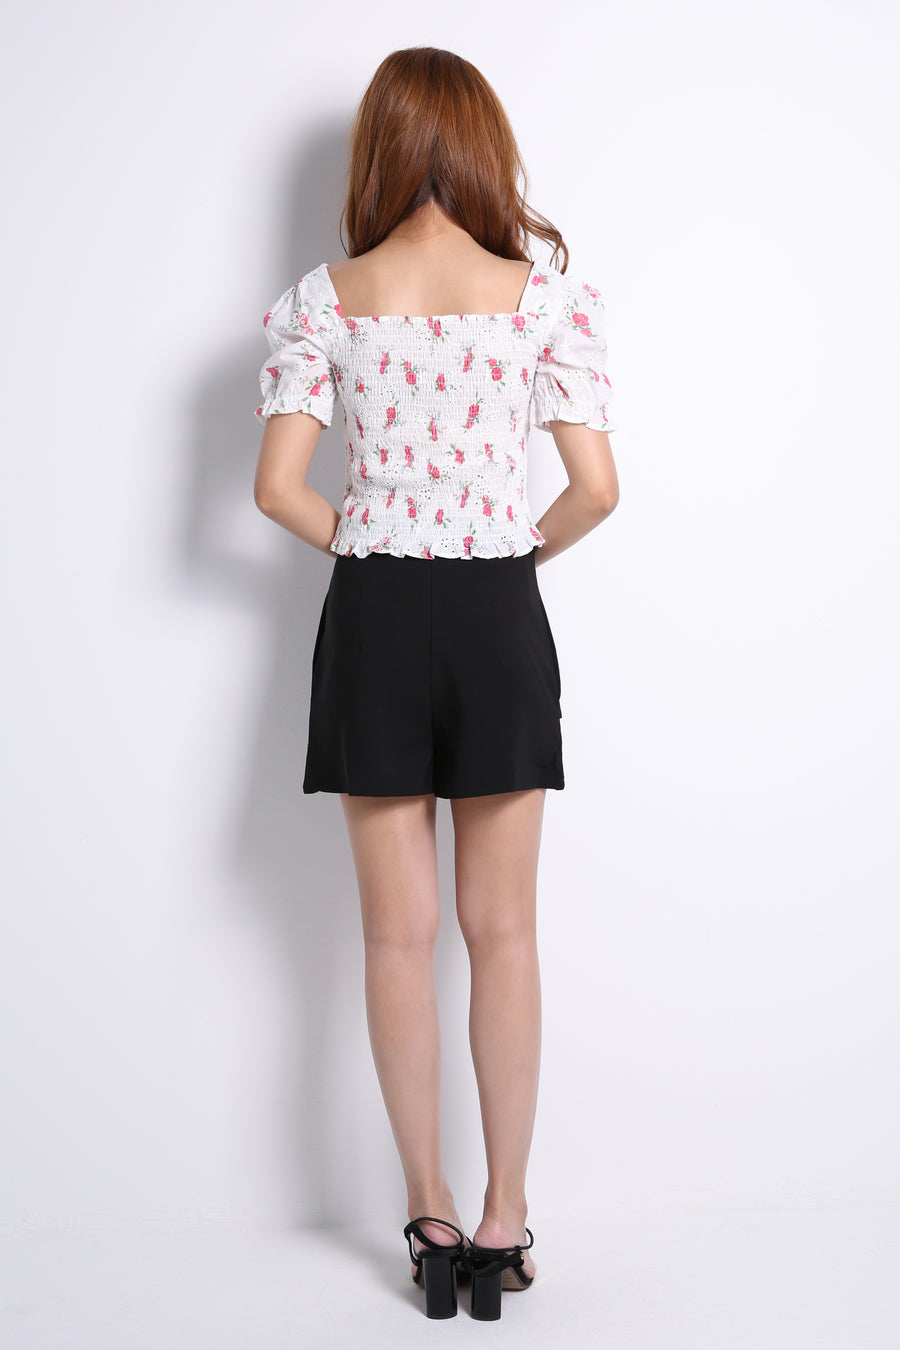 Square Button Short Pants 10615